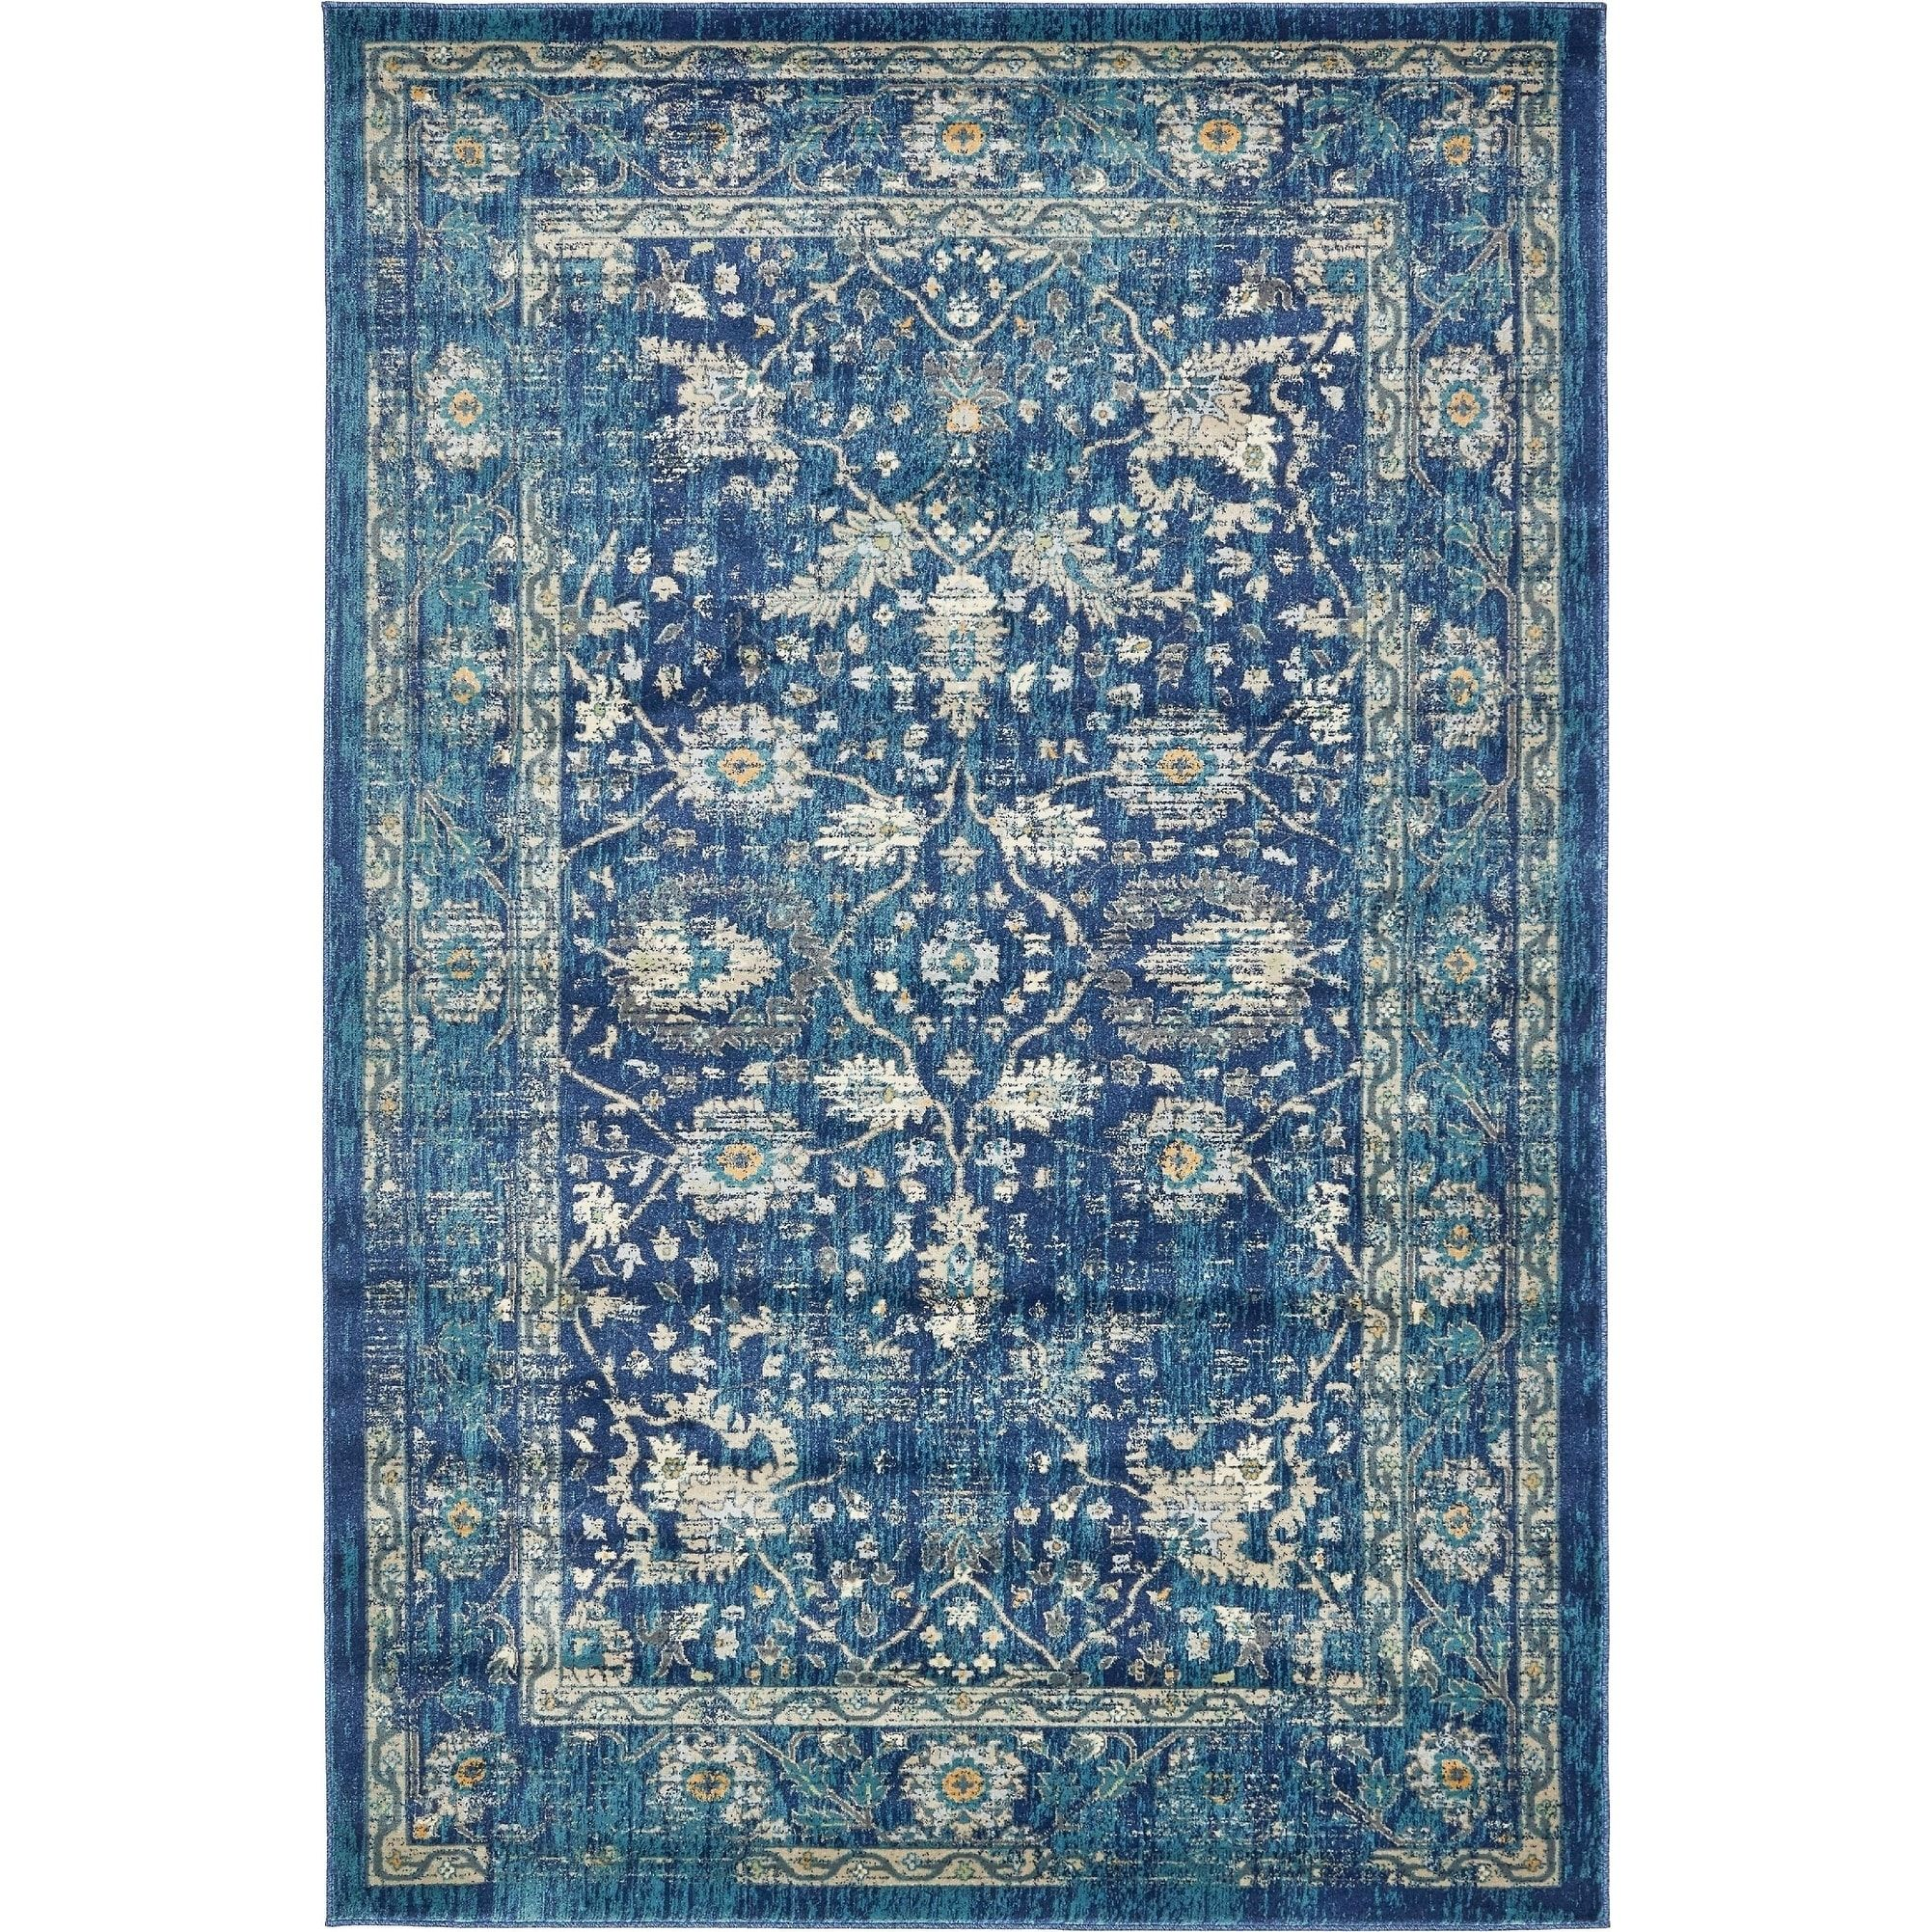 full co and rug size flooring orange of for with design also rugs magnificent room decor navy living ideas area blue